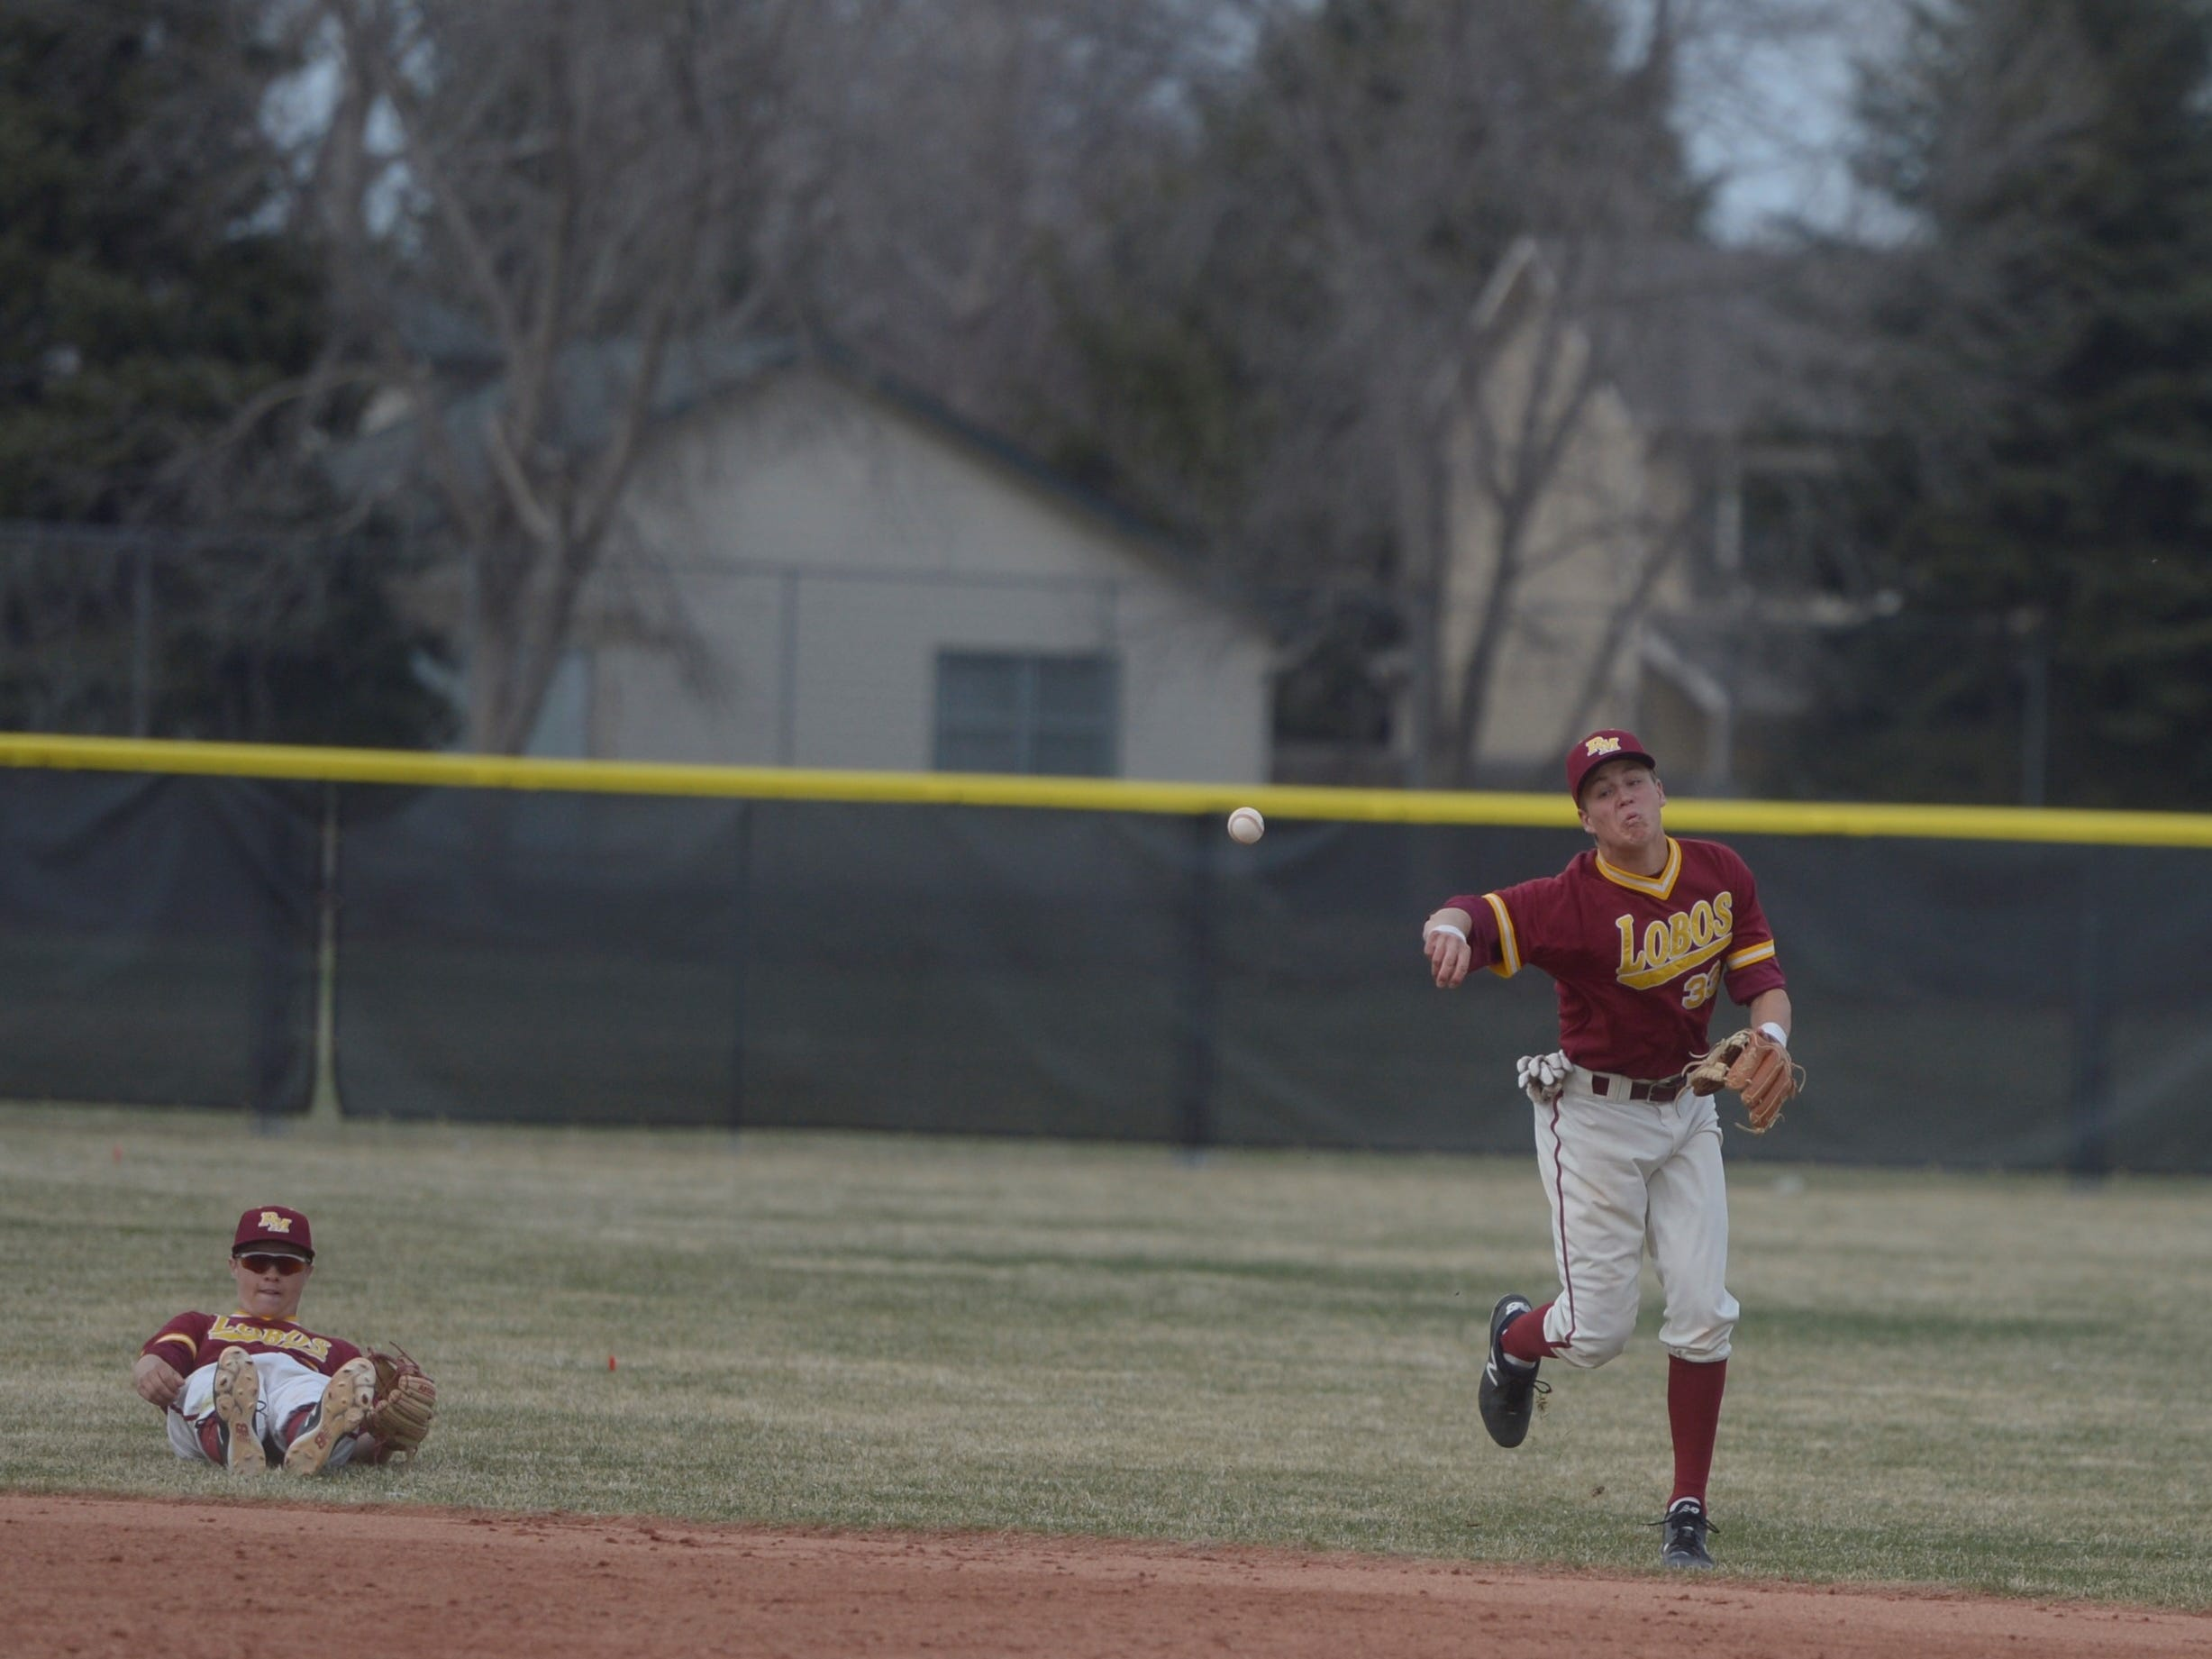 Rocky Mountain baseball shortstop Will Vasseur throws to first while second baseman Garrett Fisher looks on after a play up the middle during a game Wednesday, April 3, 2019 against Mountain Vista. Mountain Vista won 10-2.